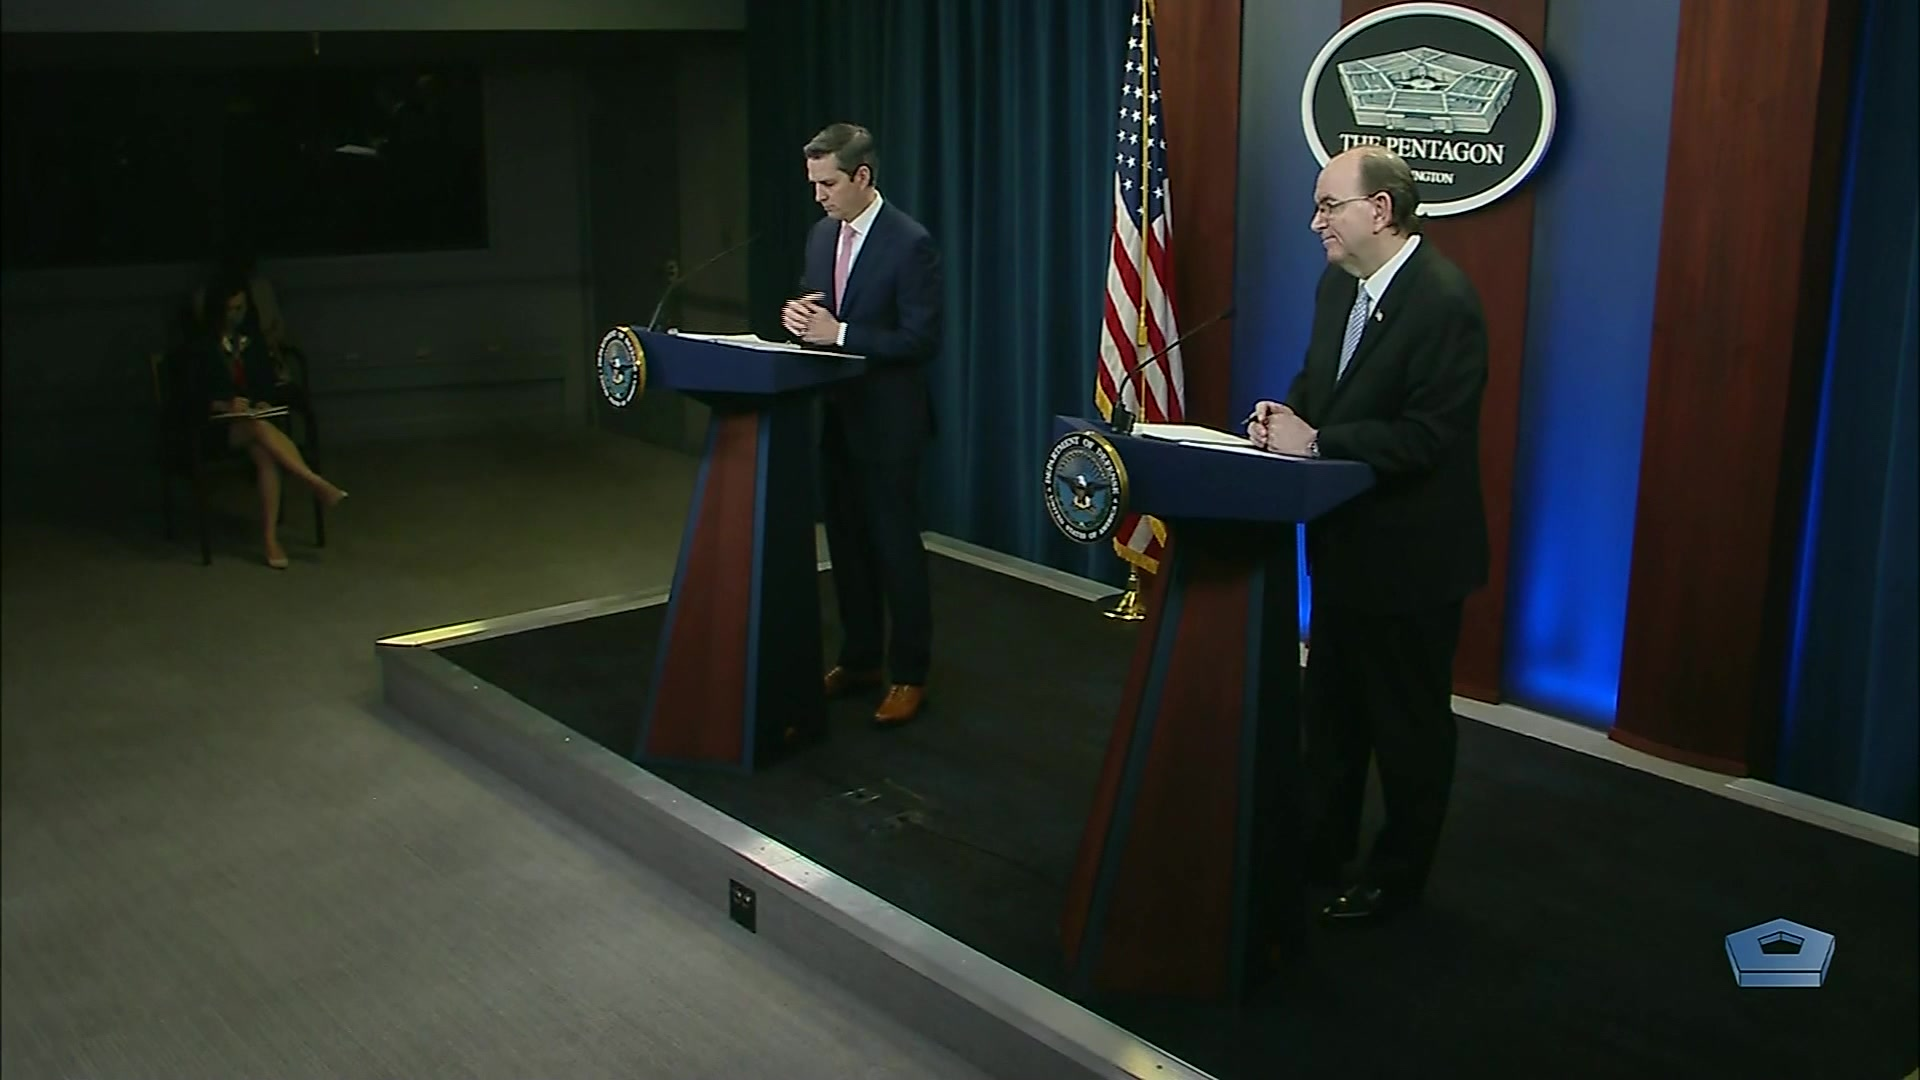 Jonathan Rath Hoffman, assistant to the secretary of defense for public affairs, briefs the news media at the Pentagon on COVID-19 efforts, May 21, 2020.